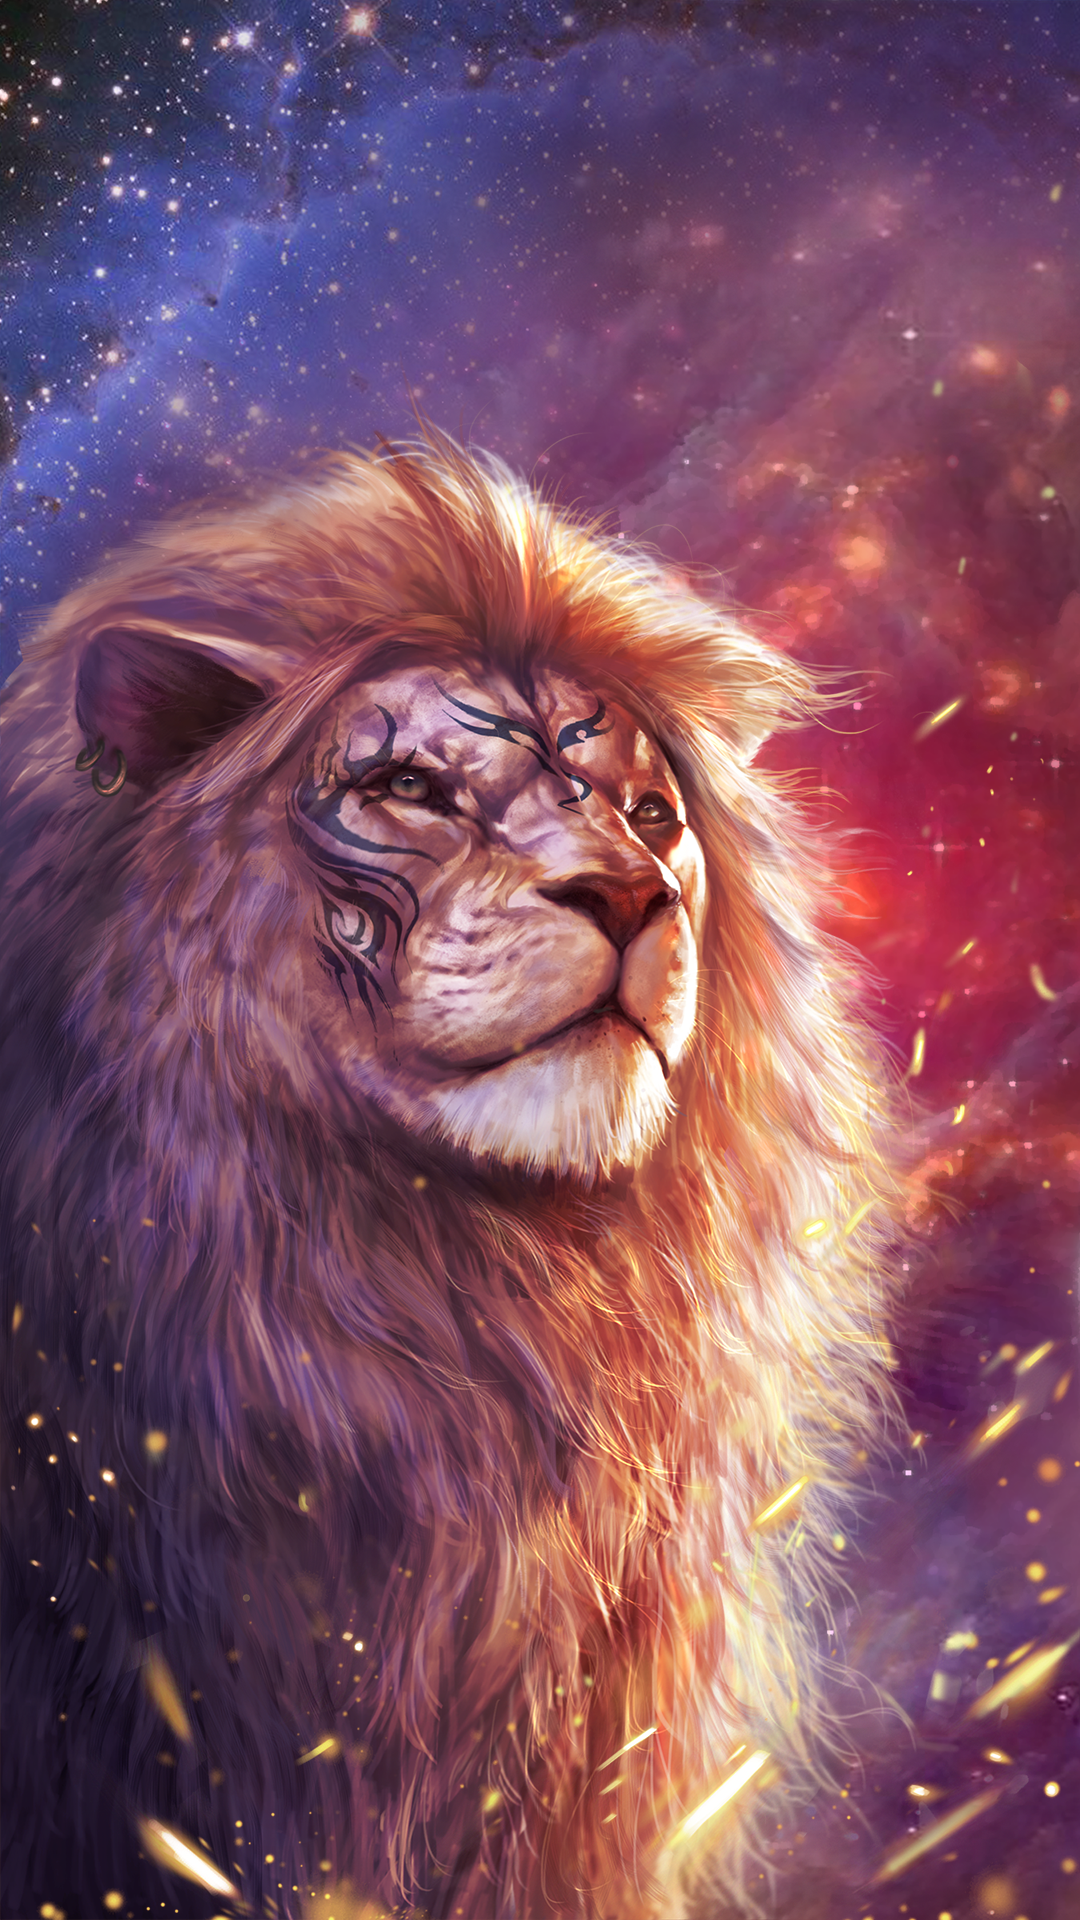 Cool lion wallpaper with totem tattoo! Android live